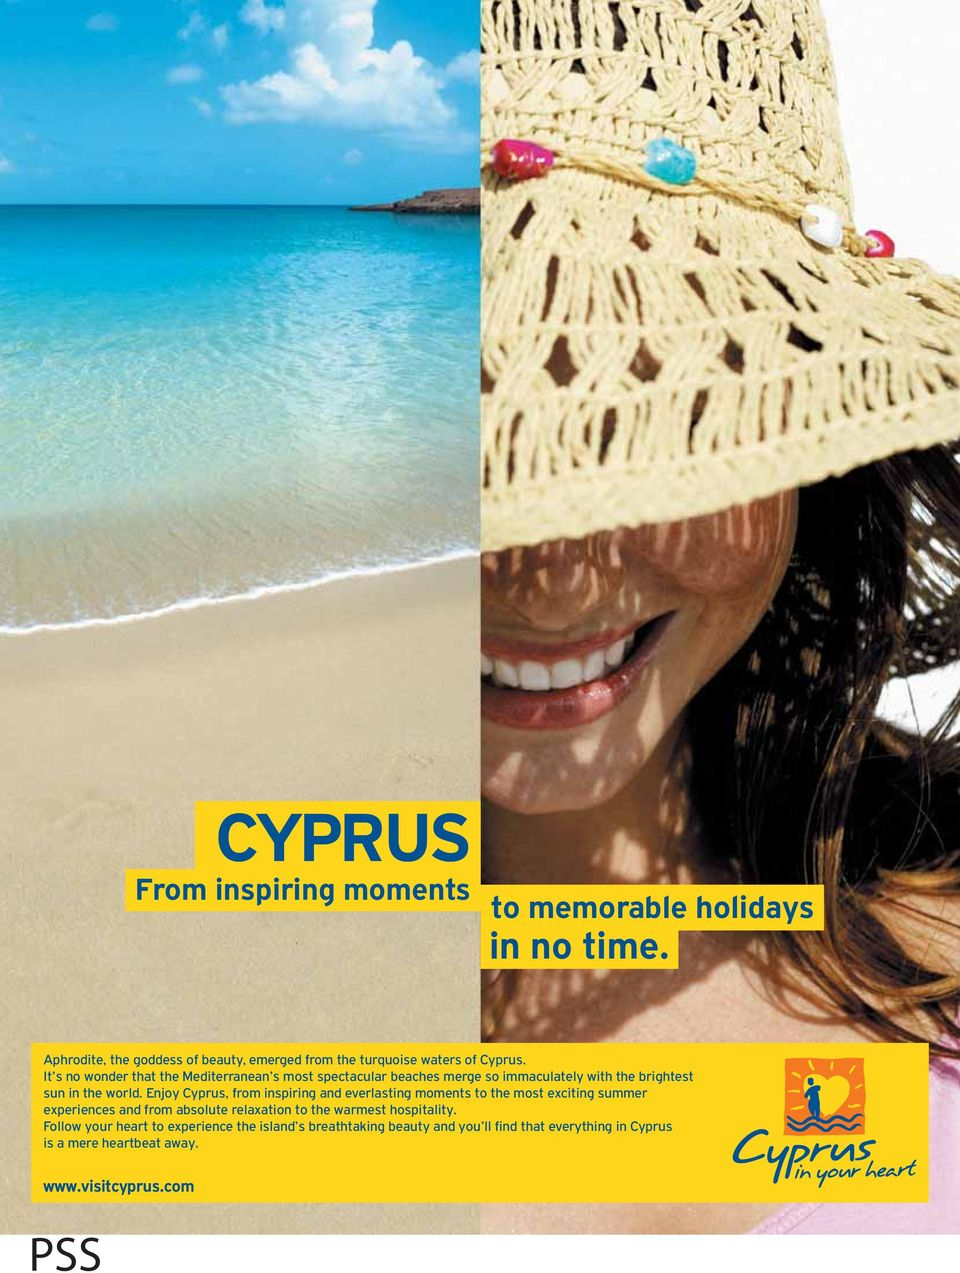 Enjoy Cyprus, from inspiring and everlasting moments to the most exciting summer experiences and from absolute relaxation to the